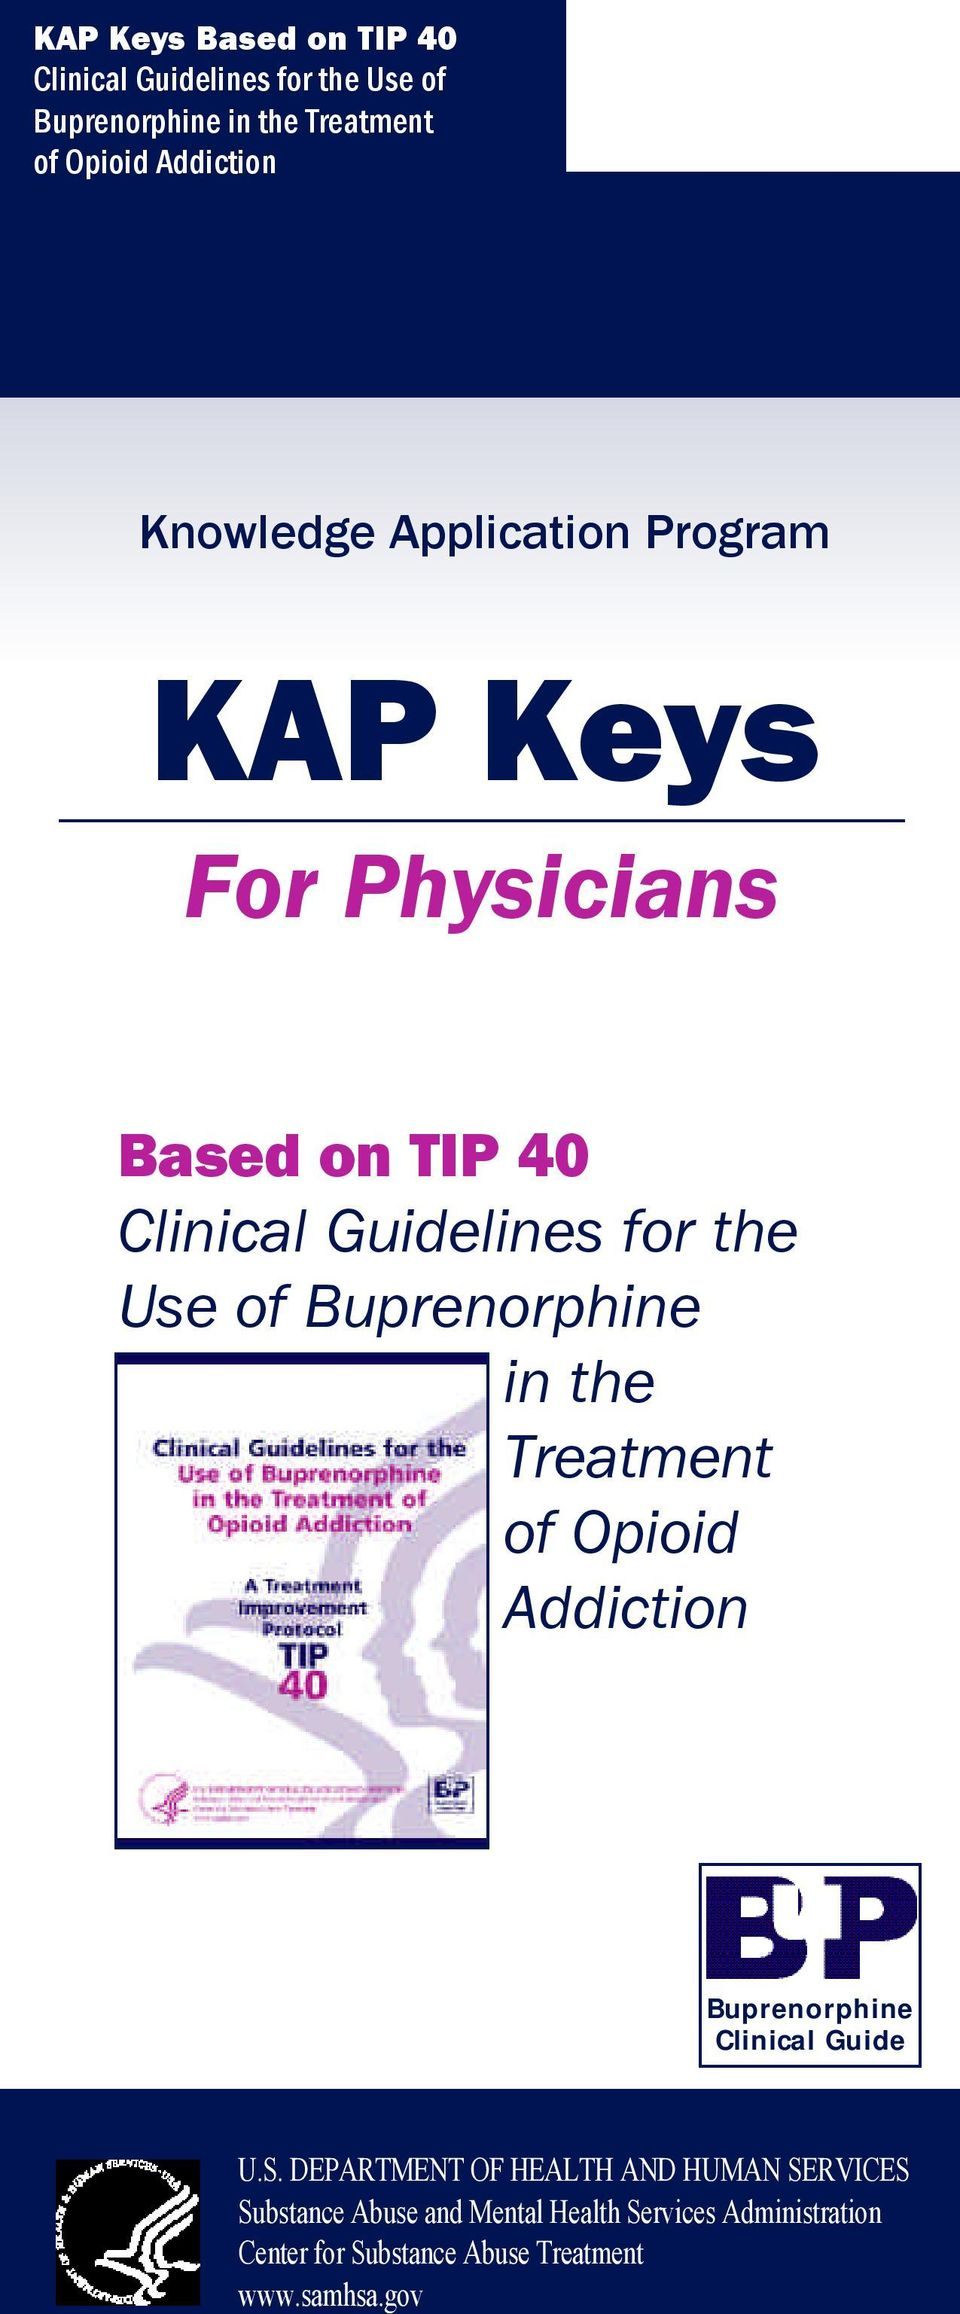 Buprenorphine in the Treatment of Opioid Addiction Buprenorphine Clinical Guide U.S.